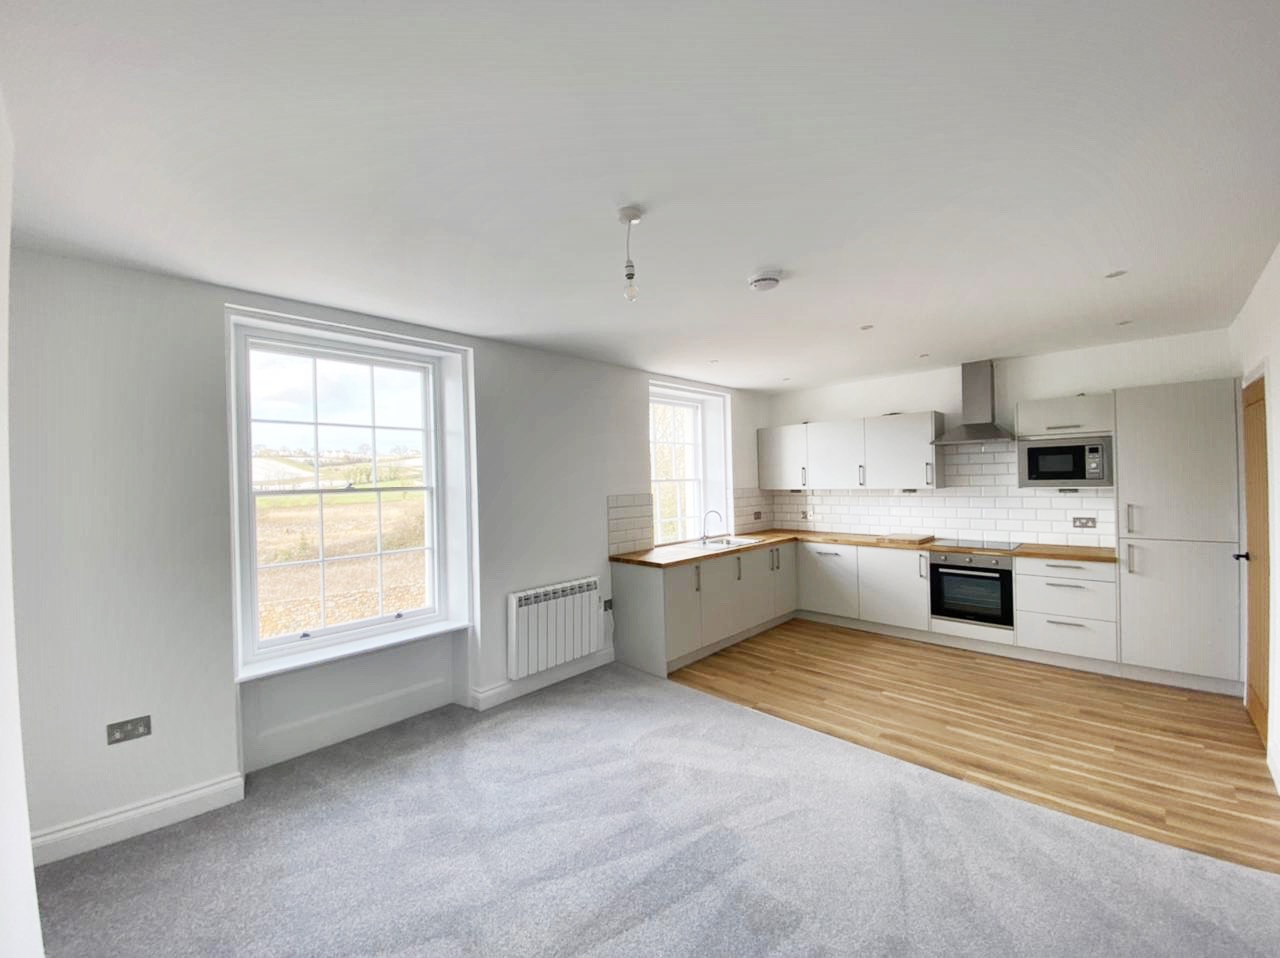 Gorgeous Duplex Apartment, Completely Renovated Throughout, Parking & Garden